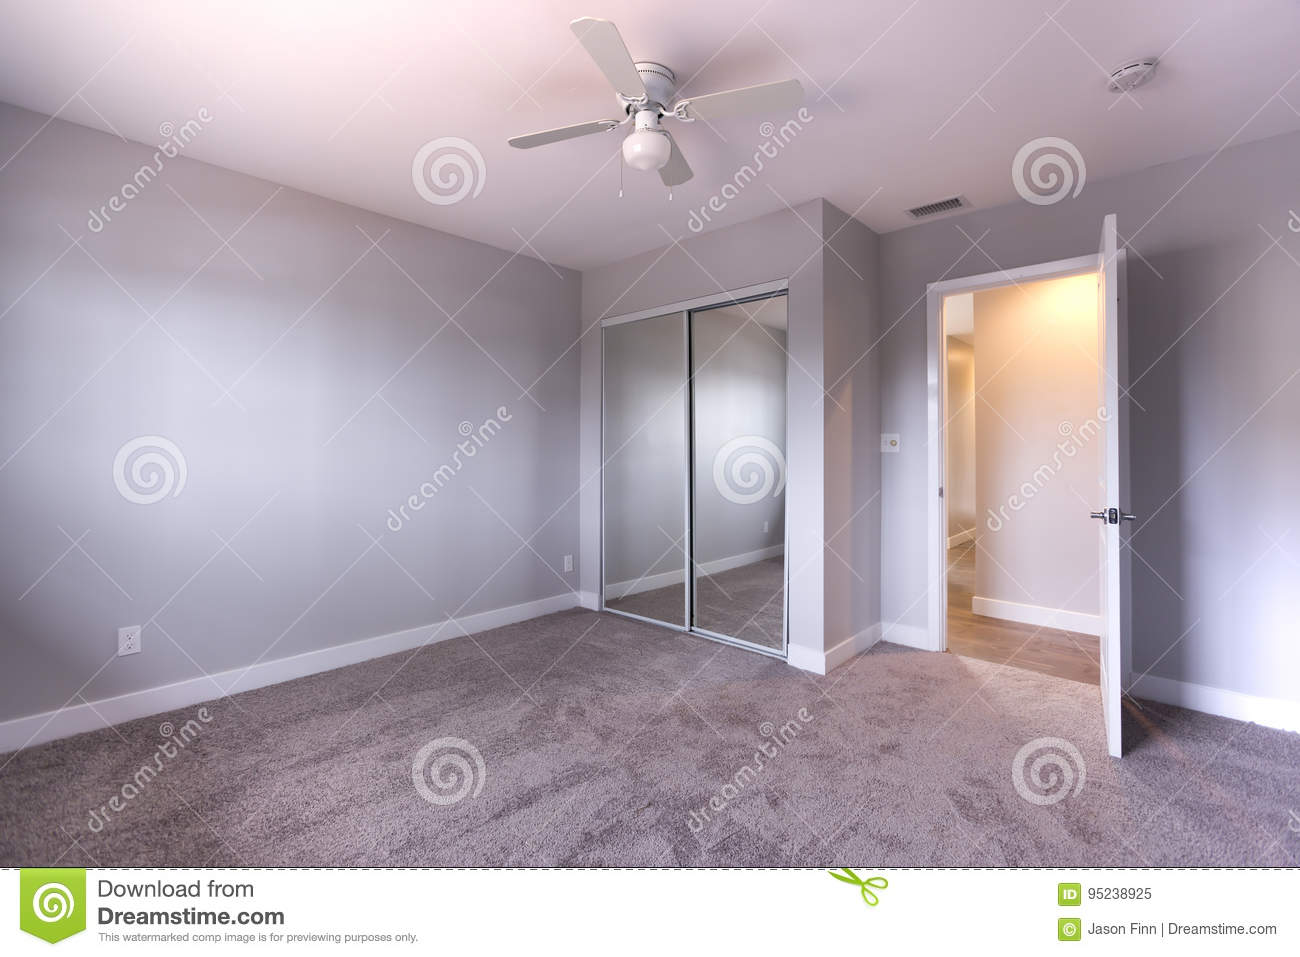 Image of: Empty Bedroom With Blue Walls And Carpet Stock Image Image Of Colors Model 95238925